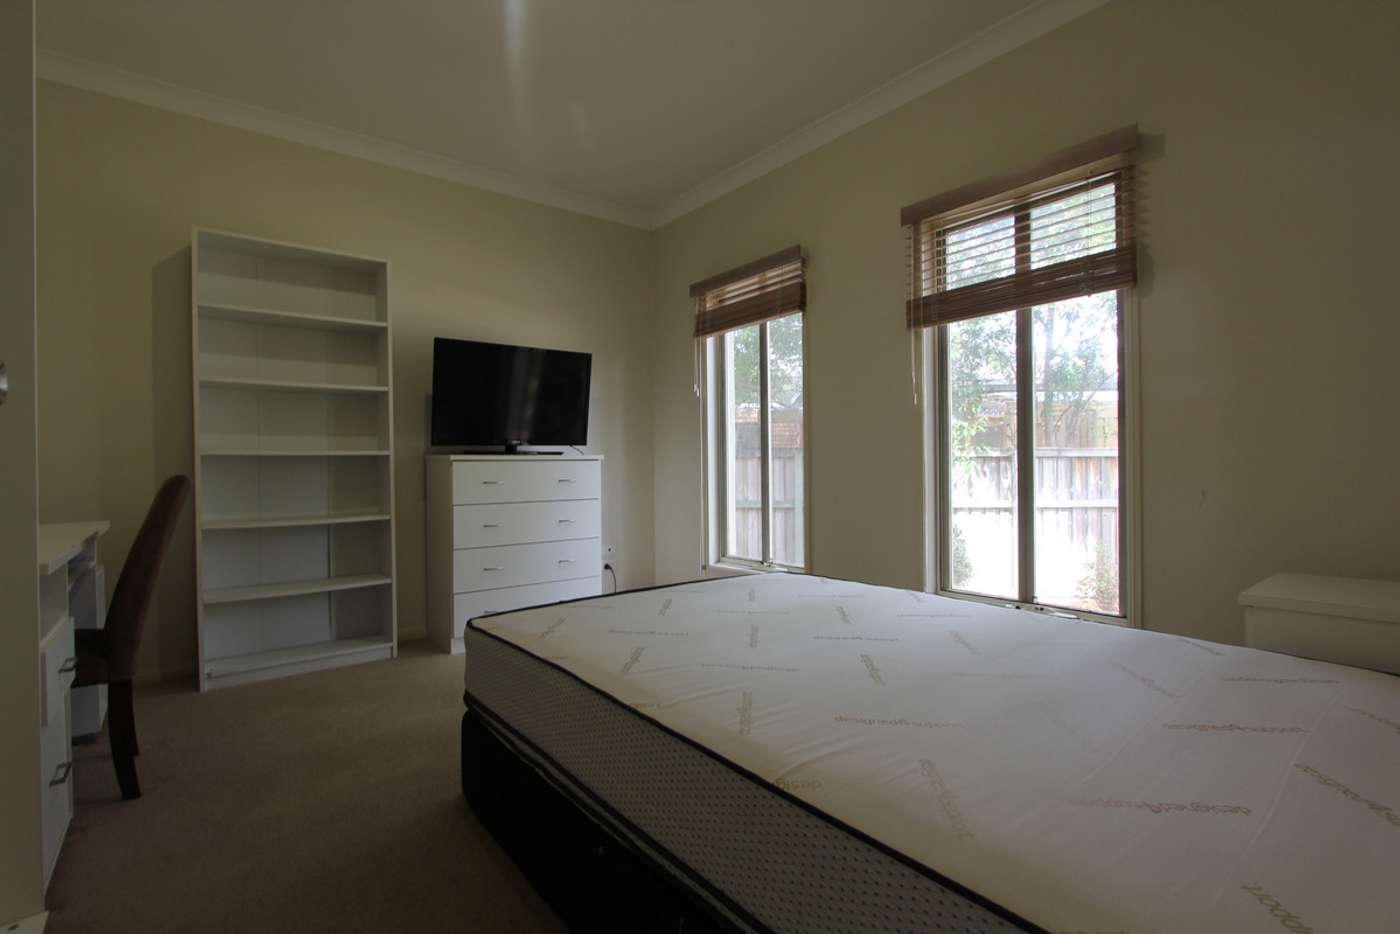 Seventh view of Homely flat listing, 5 Morea Court, Varsity Lakes QLD 4227